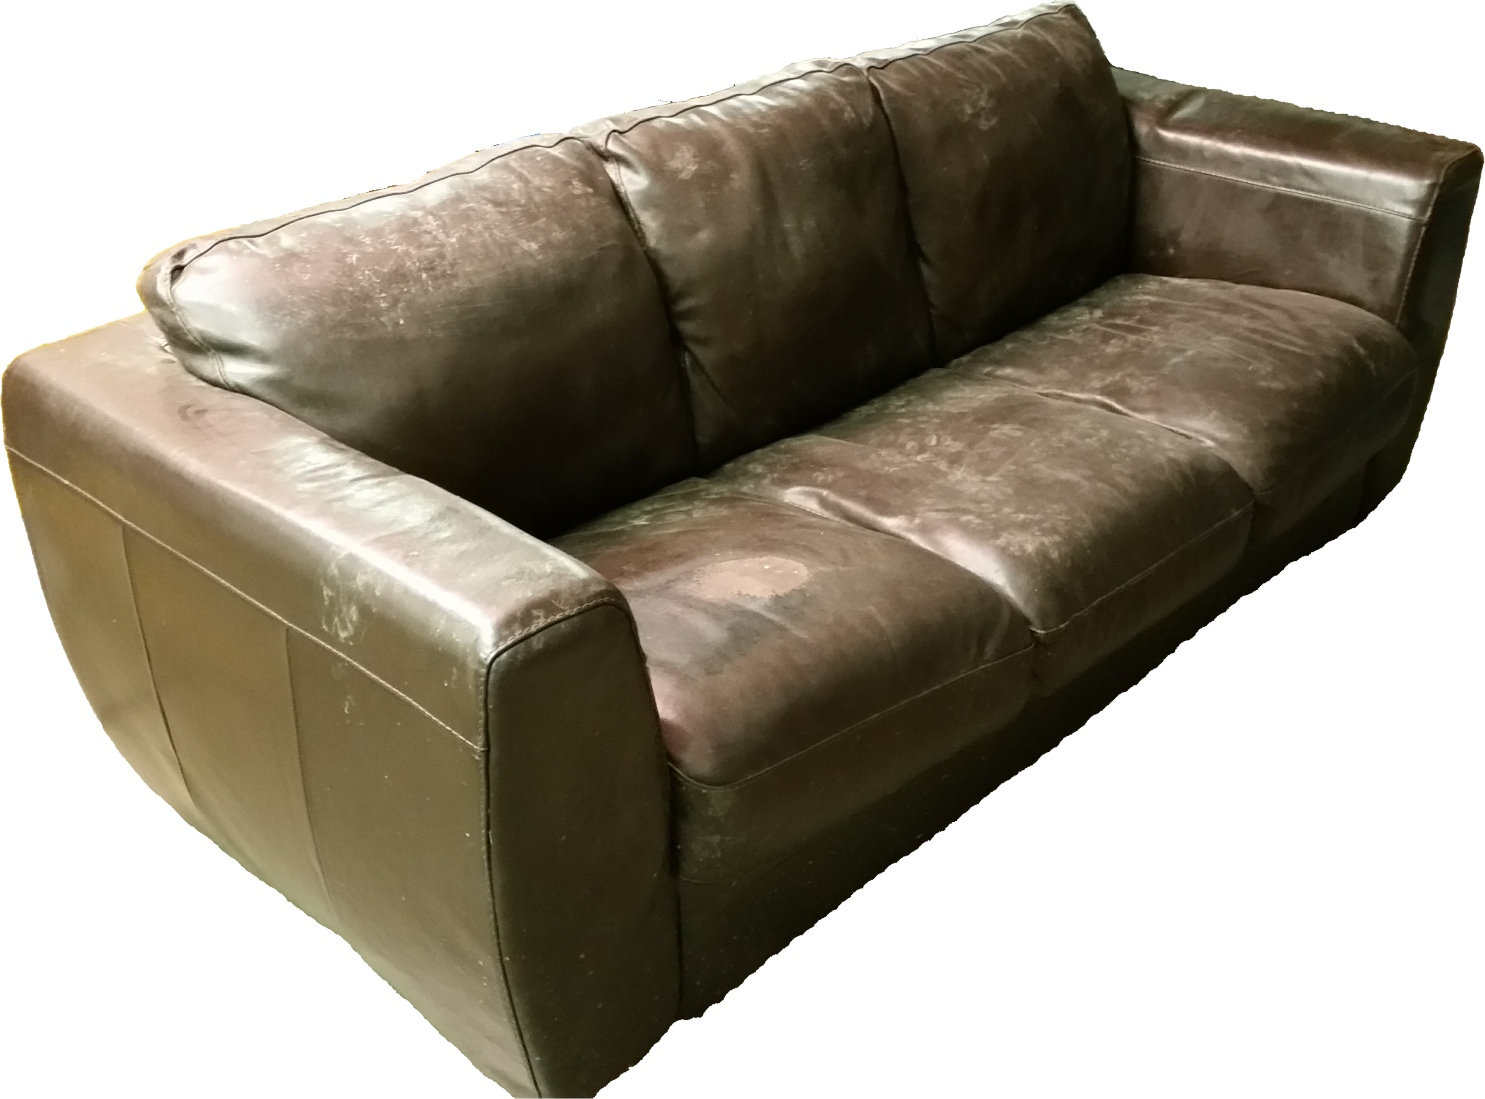 restoring leather sofa ashley furniture sectional sleeper restoration service by the experts a brighter home